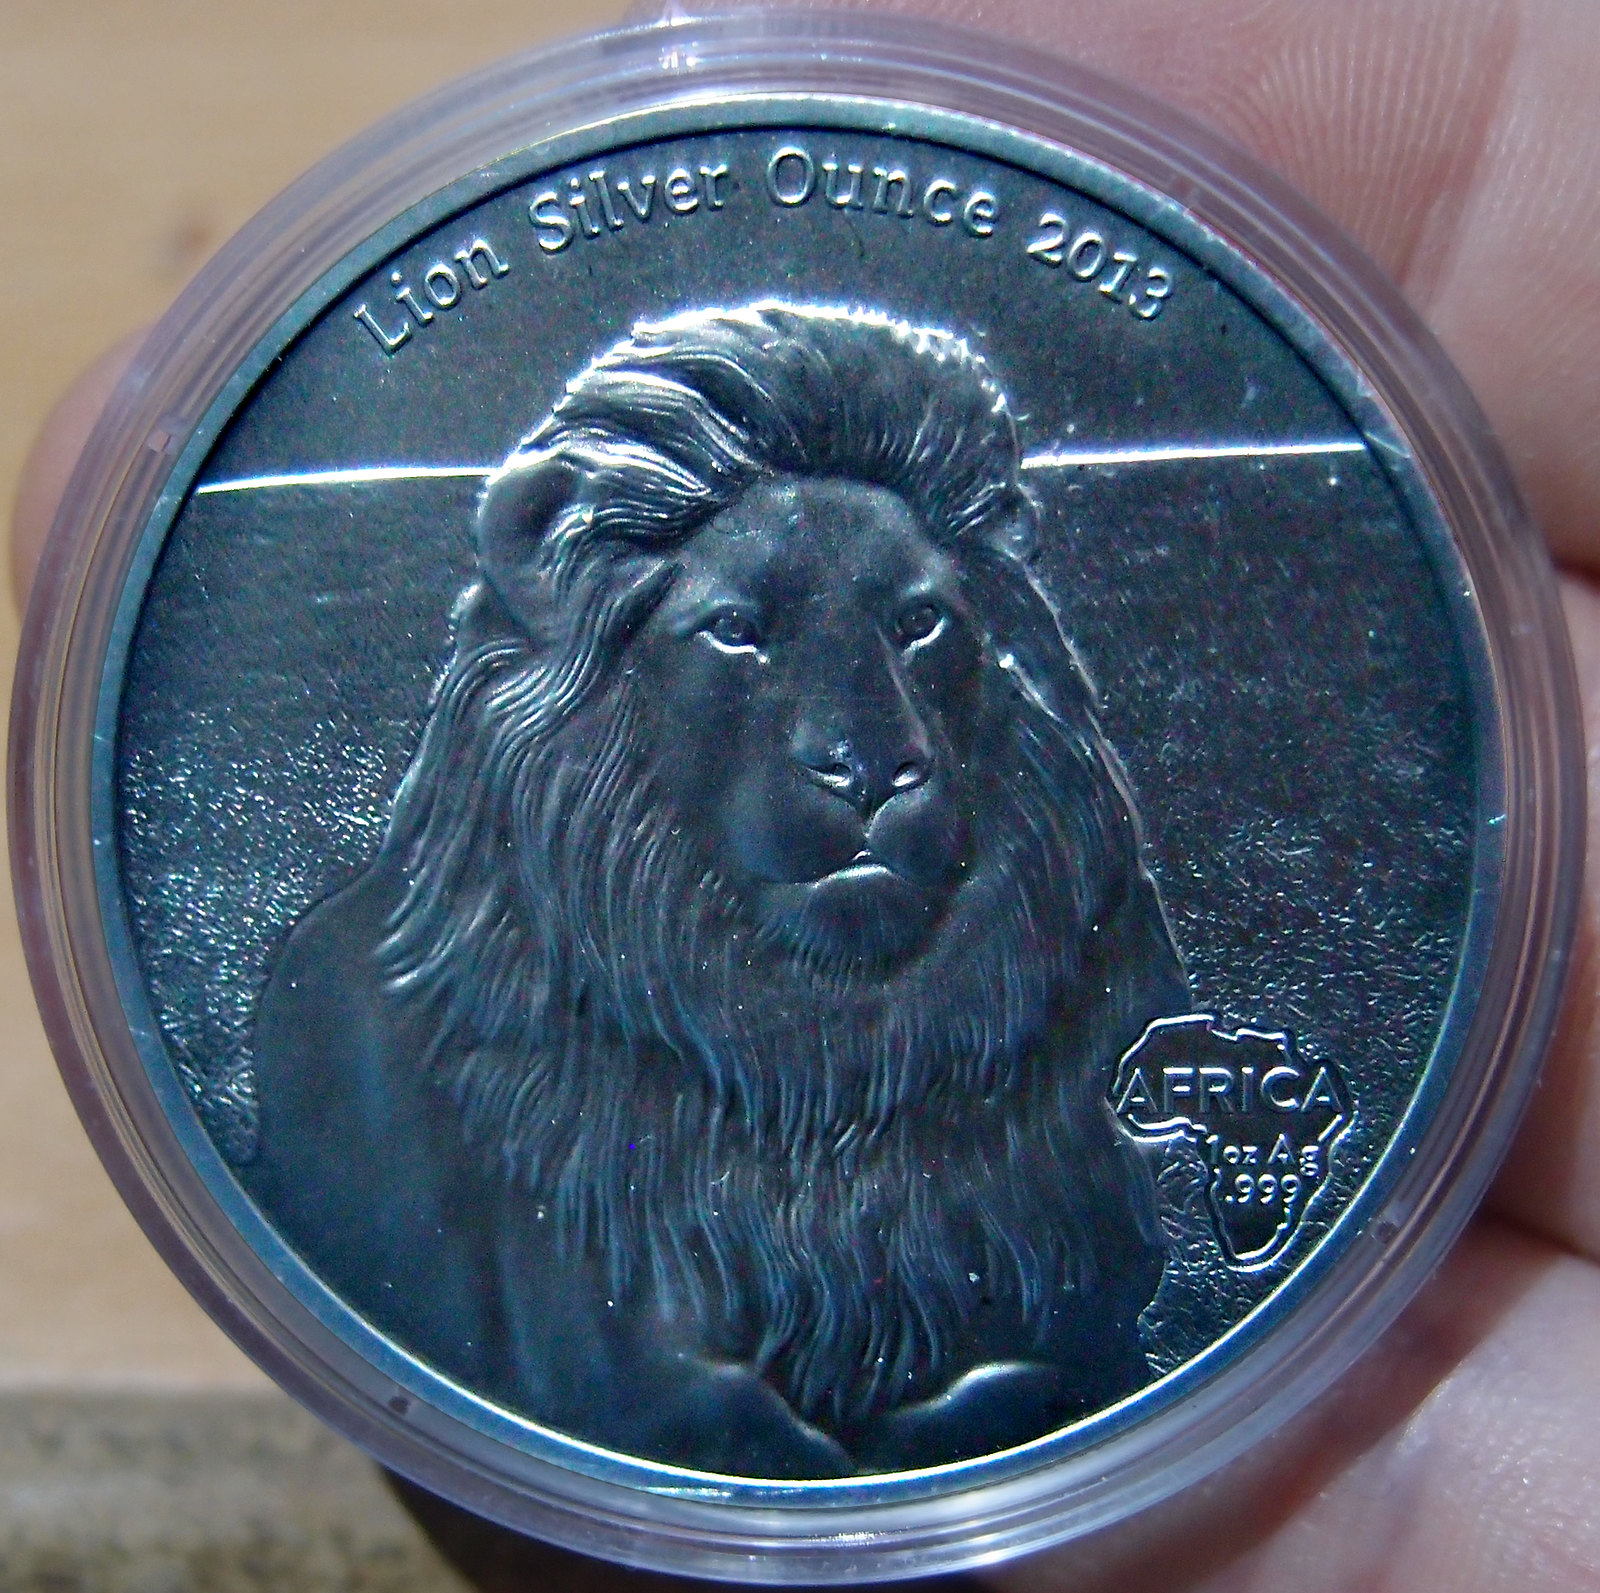 African Silver Ounce Serie  10025276563_217876fa8f_h